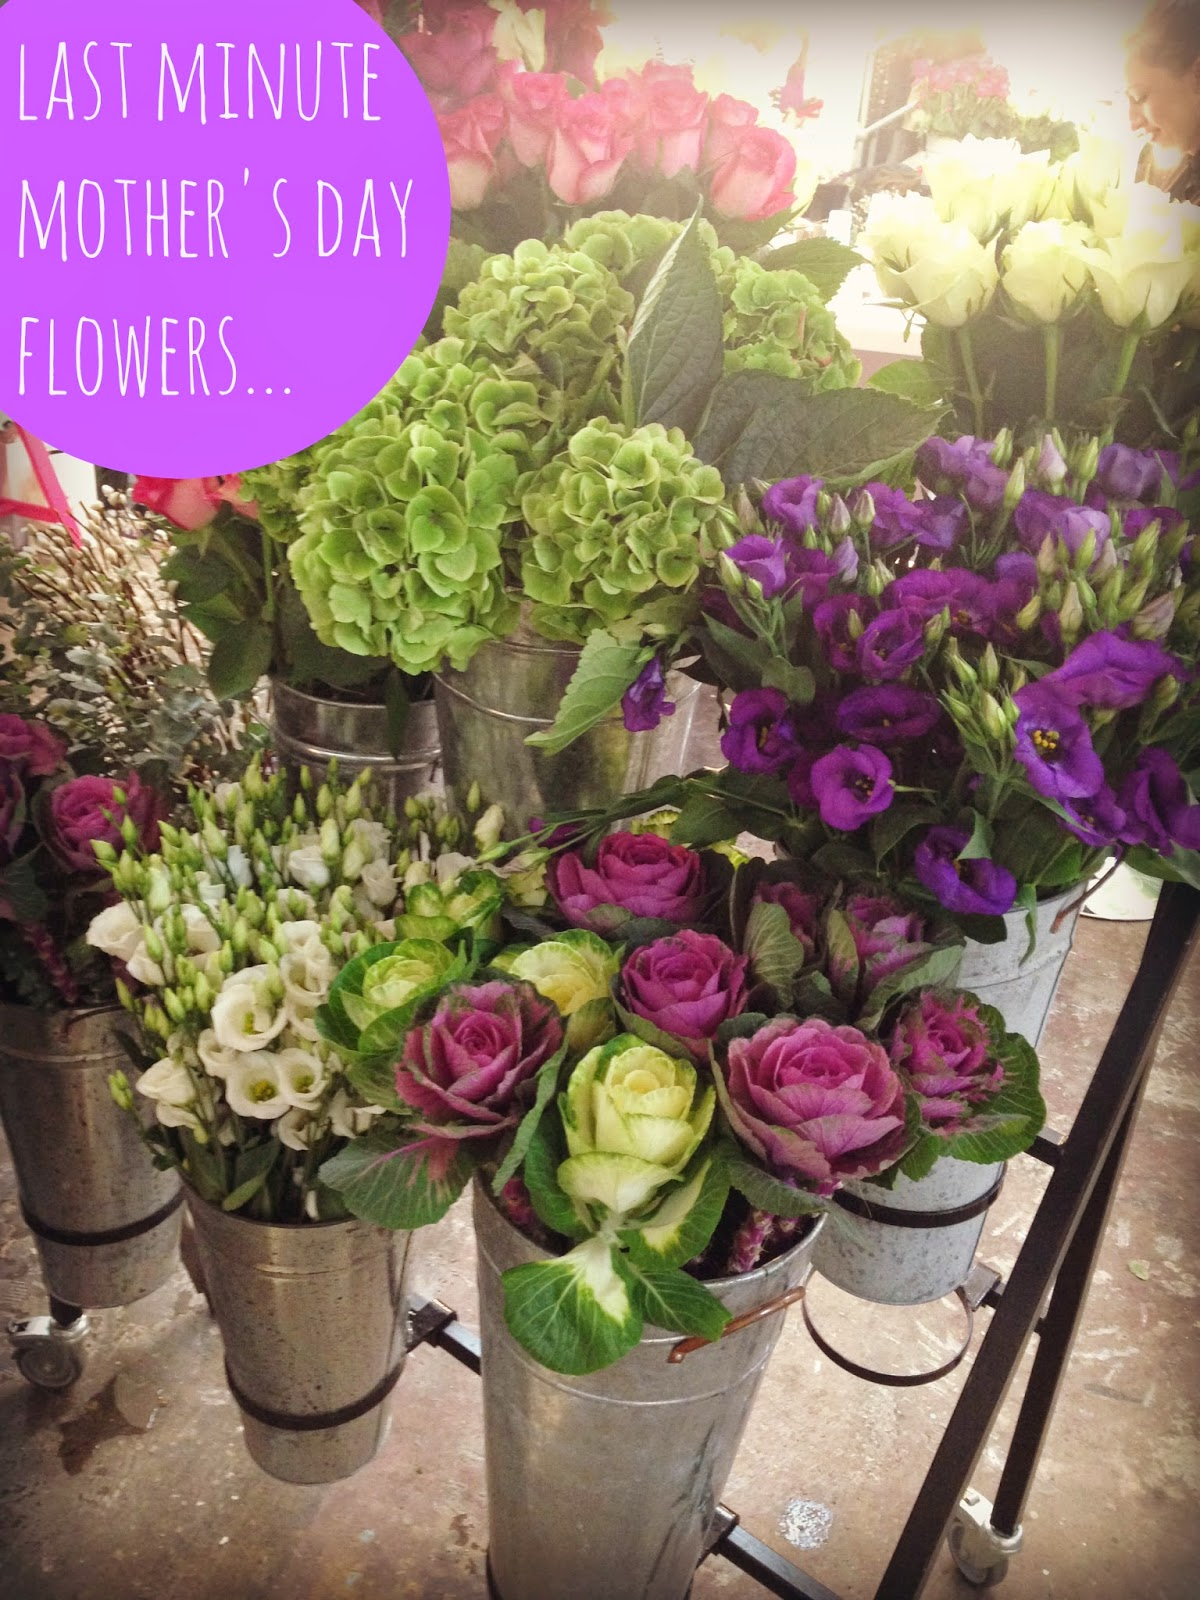 mamasVIB   V. I. BUYS: Last Minute Mothers Day flowers… for less!   mamasVIb   blog   mummy blog   marks and spencer   mothers day   mother day gifts   mothers day flowers   bloom and wild   bloom & Wild   apple yard flowers   modern bouquets   flowers by post   roses   bunch of flowers   dotcomgiftshop   flowers for mu  mothers day   floral arrangements   blooms   discount codes   flowers for less   mamasVIB bonita turner   flowers   bouquets   florists